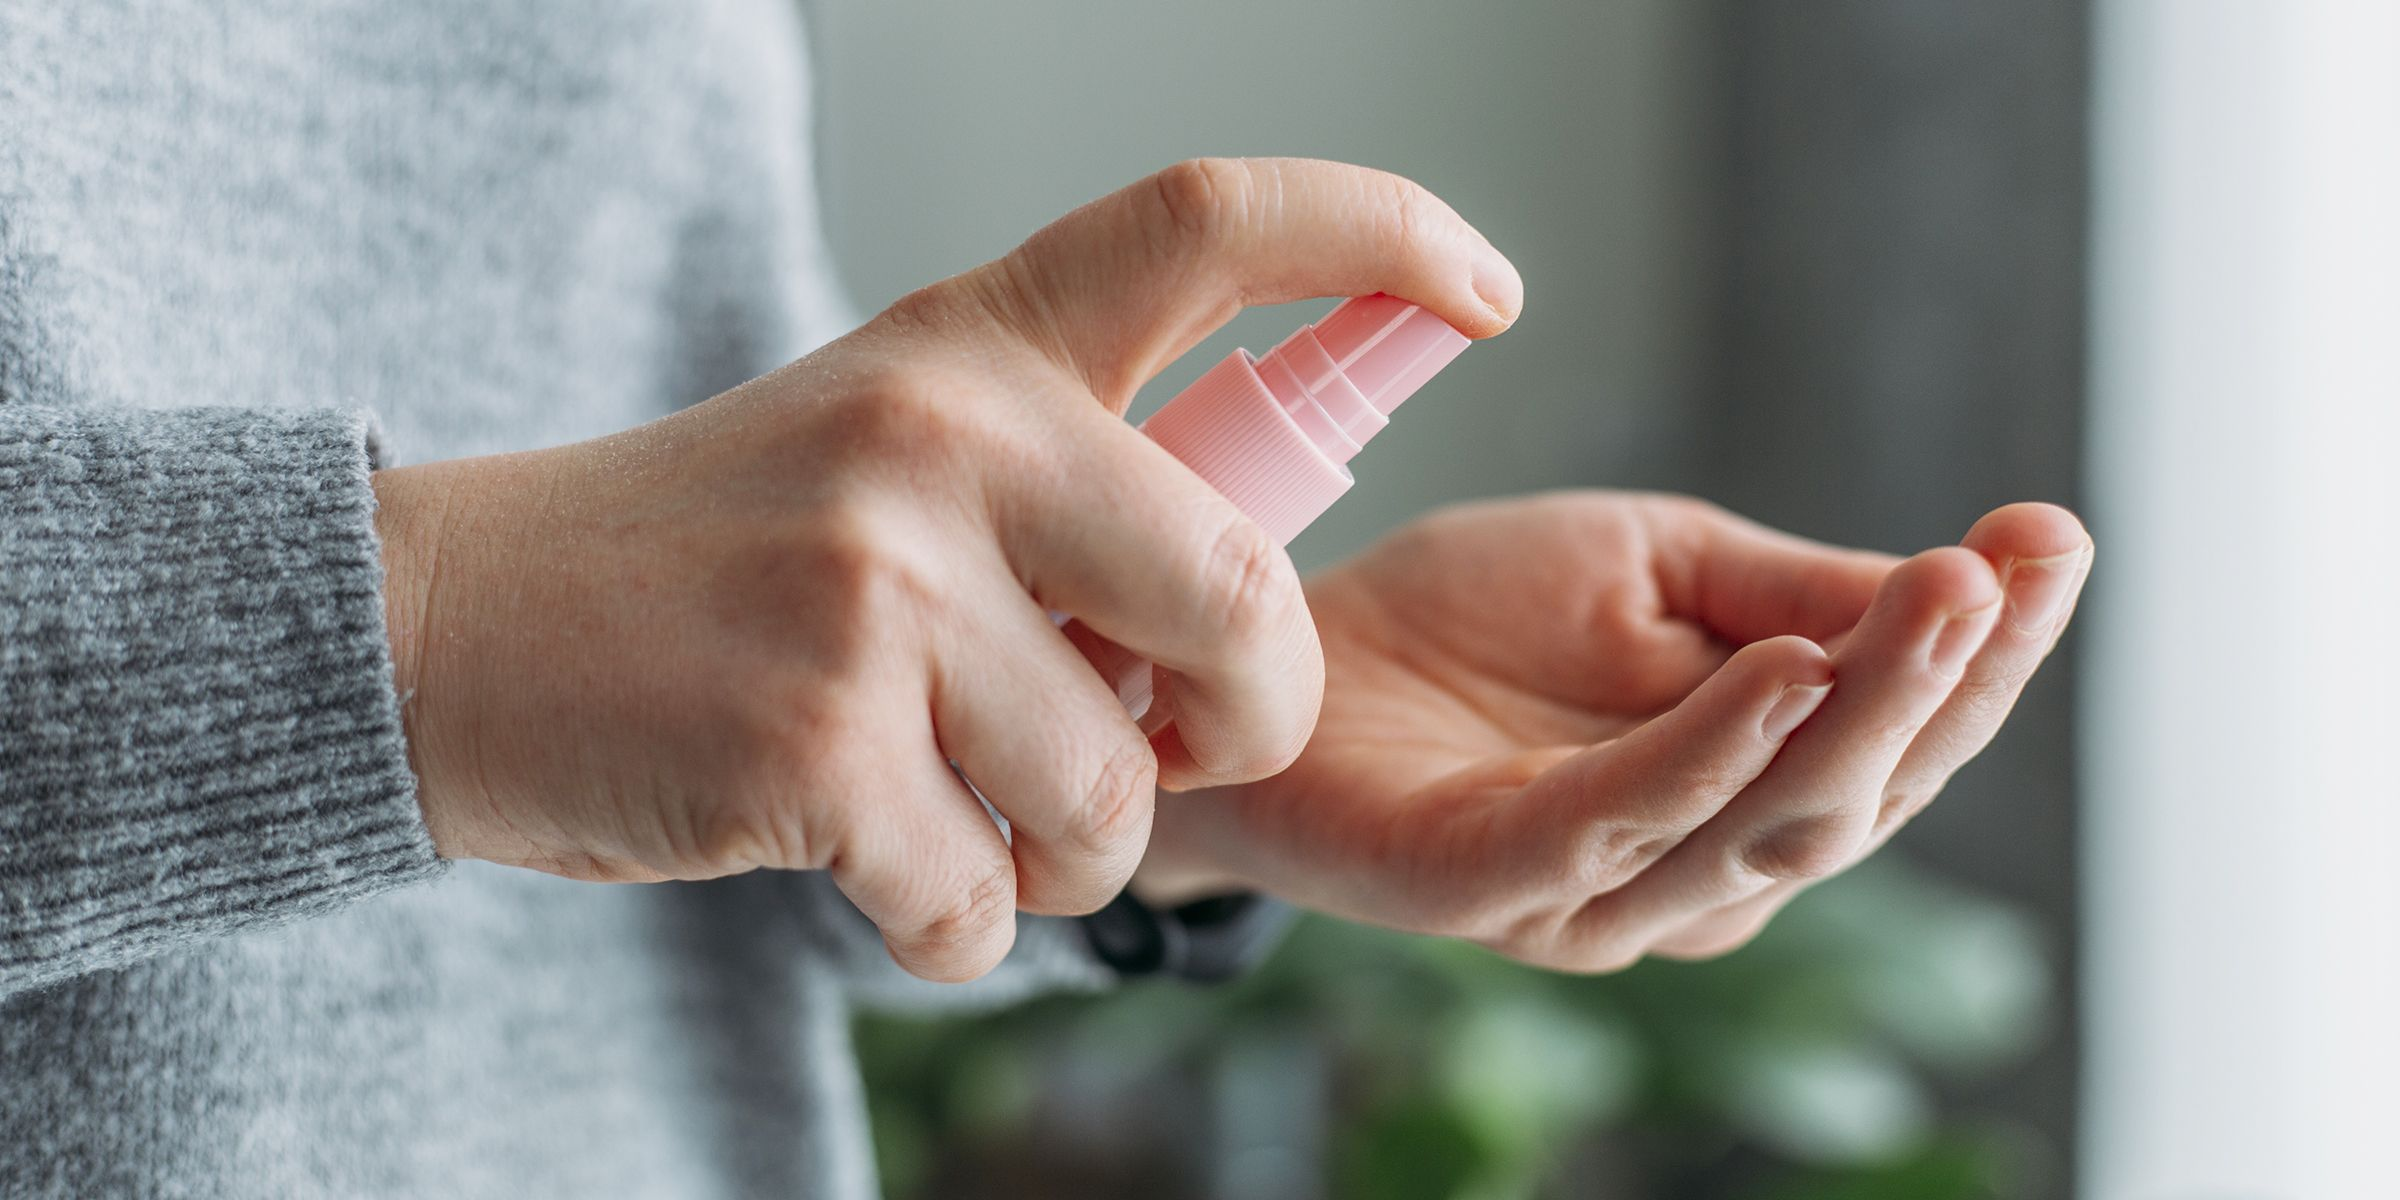 How One Beauty Brand Launched A Hand Sanitizer To Help Give Back